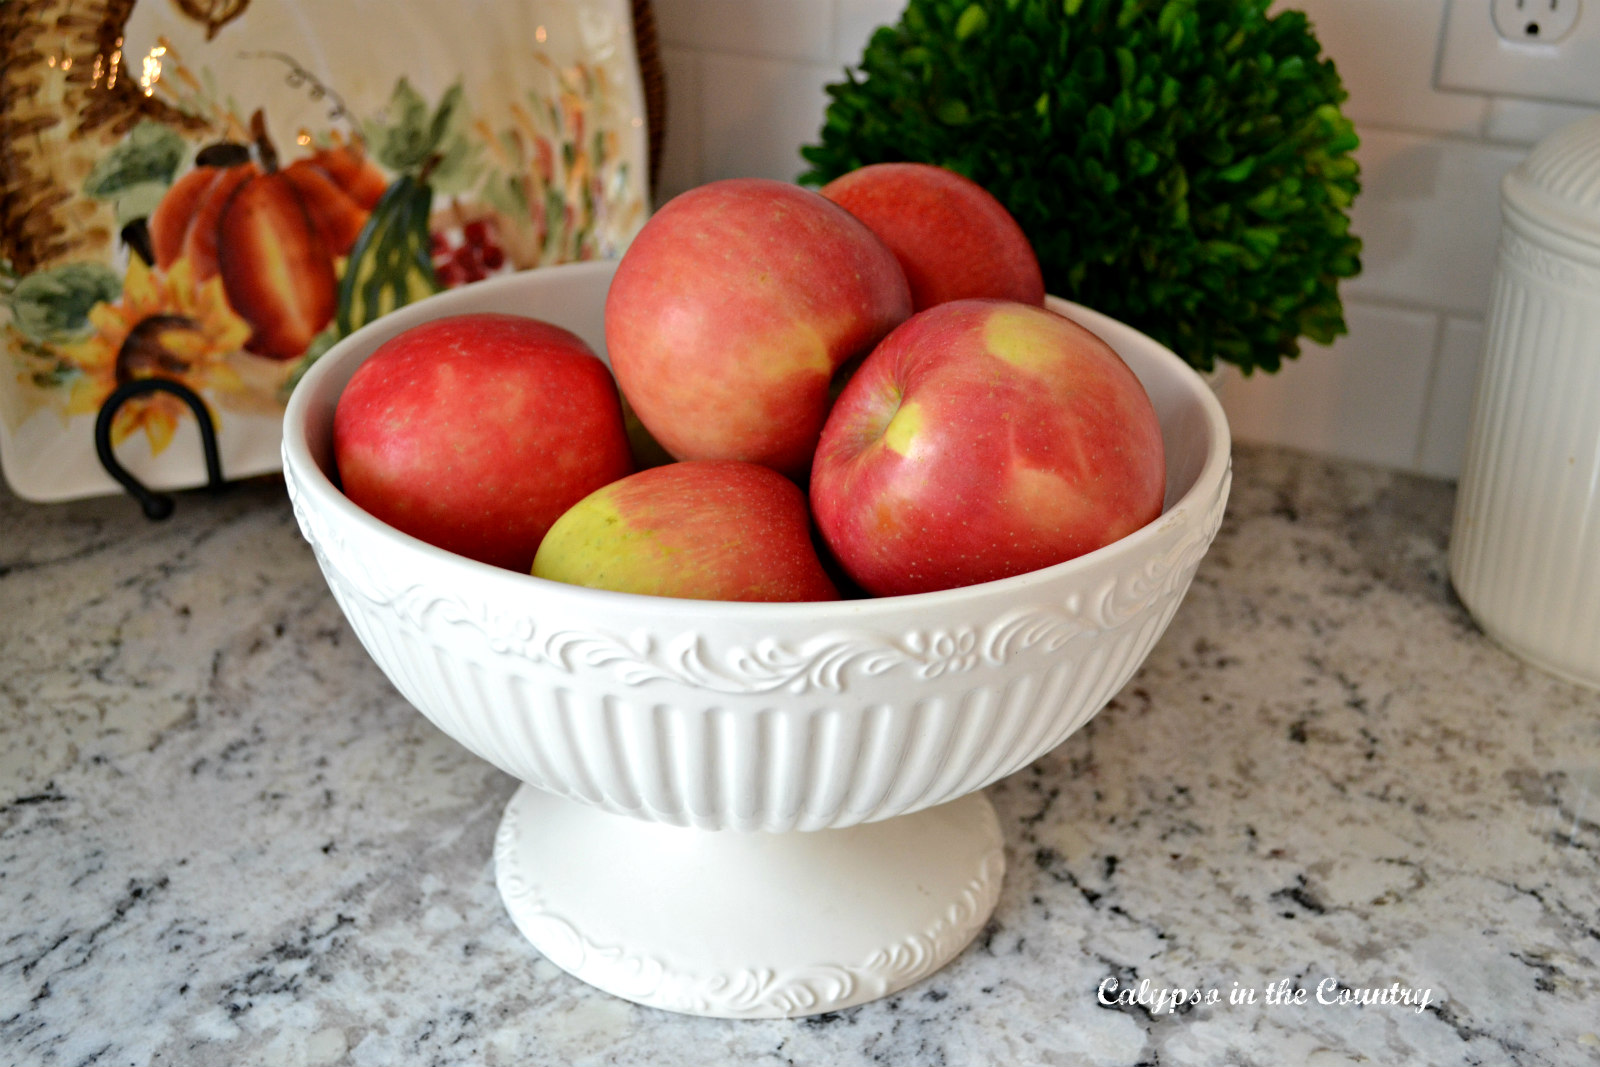 Fruit Bowl filled with red apples